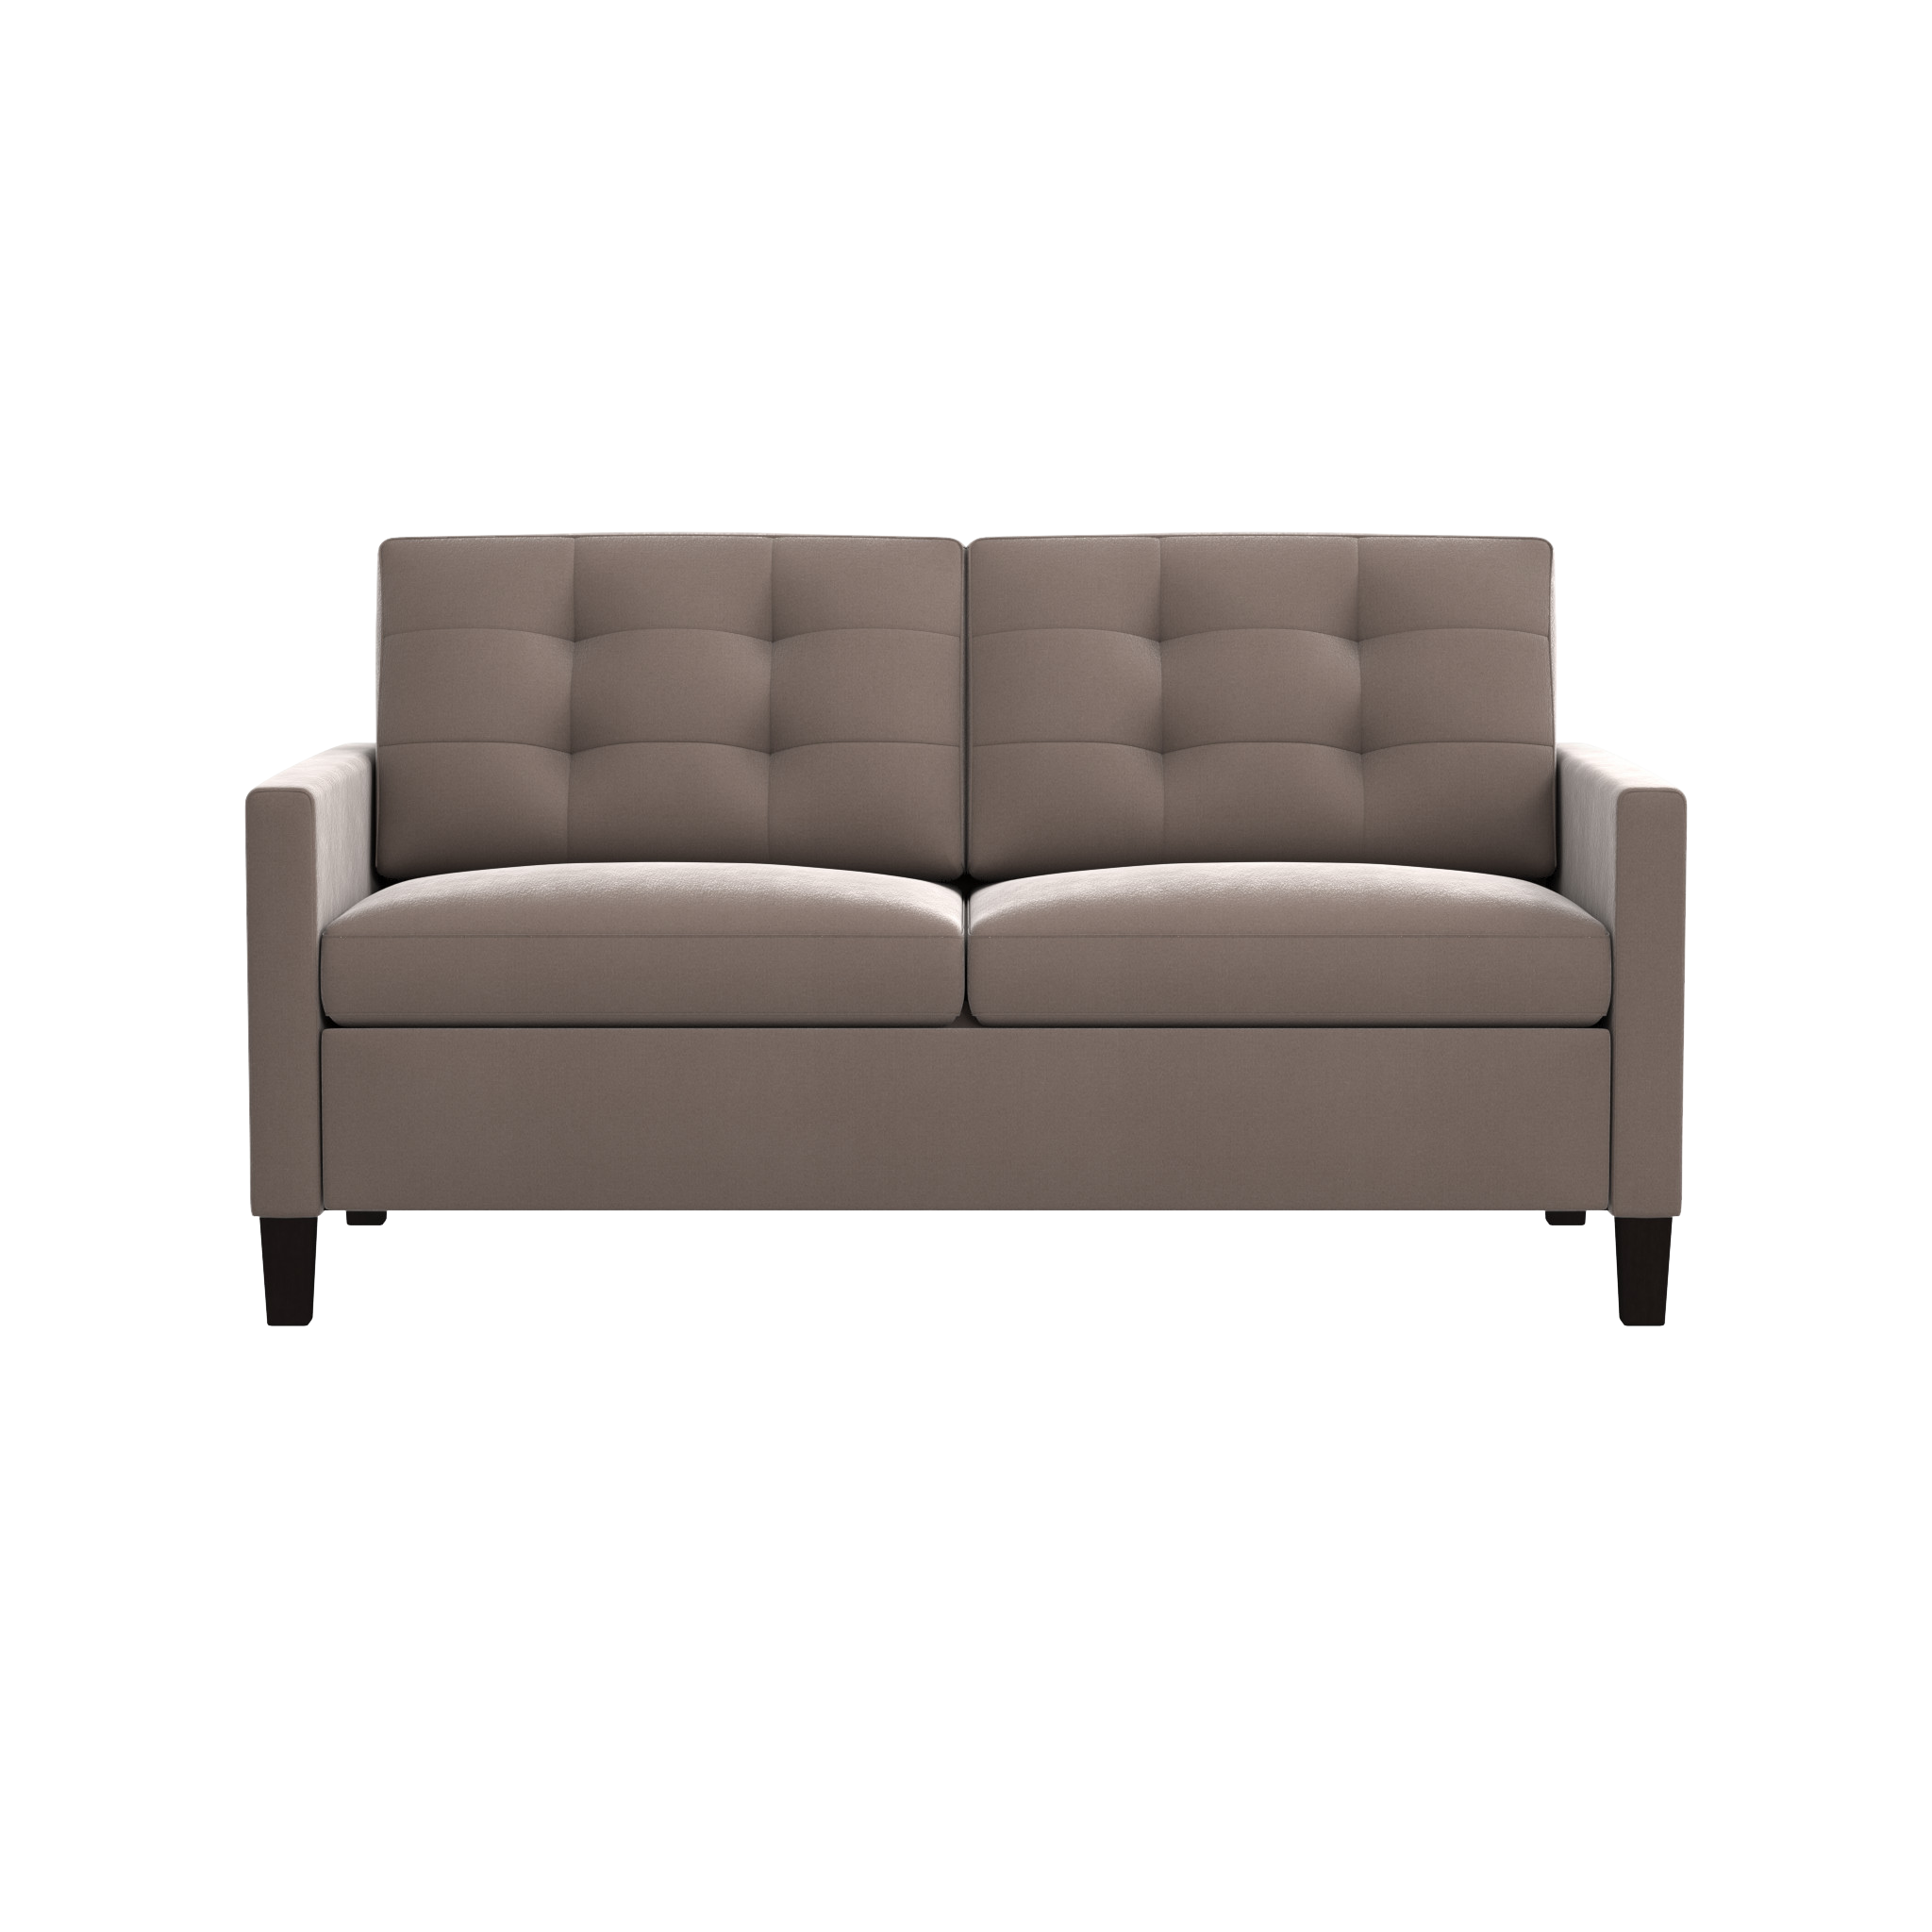 Superb Karnes 71 Queen Tufted Sleeper Sofa Nicki H Sofa Inzonedesignstudio Interior Chair Design Inzonedesignstudiocom